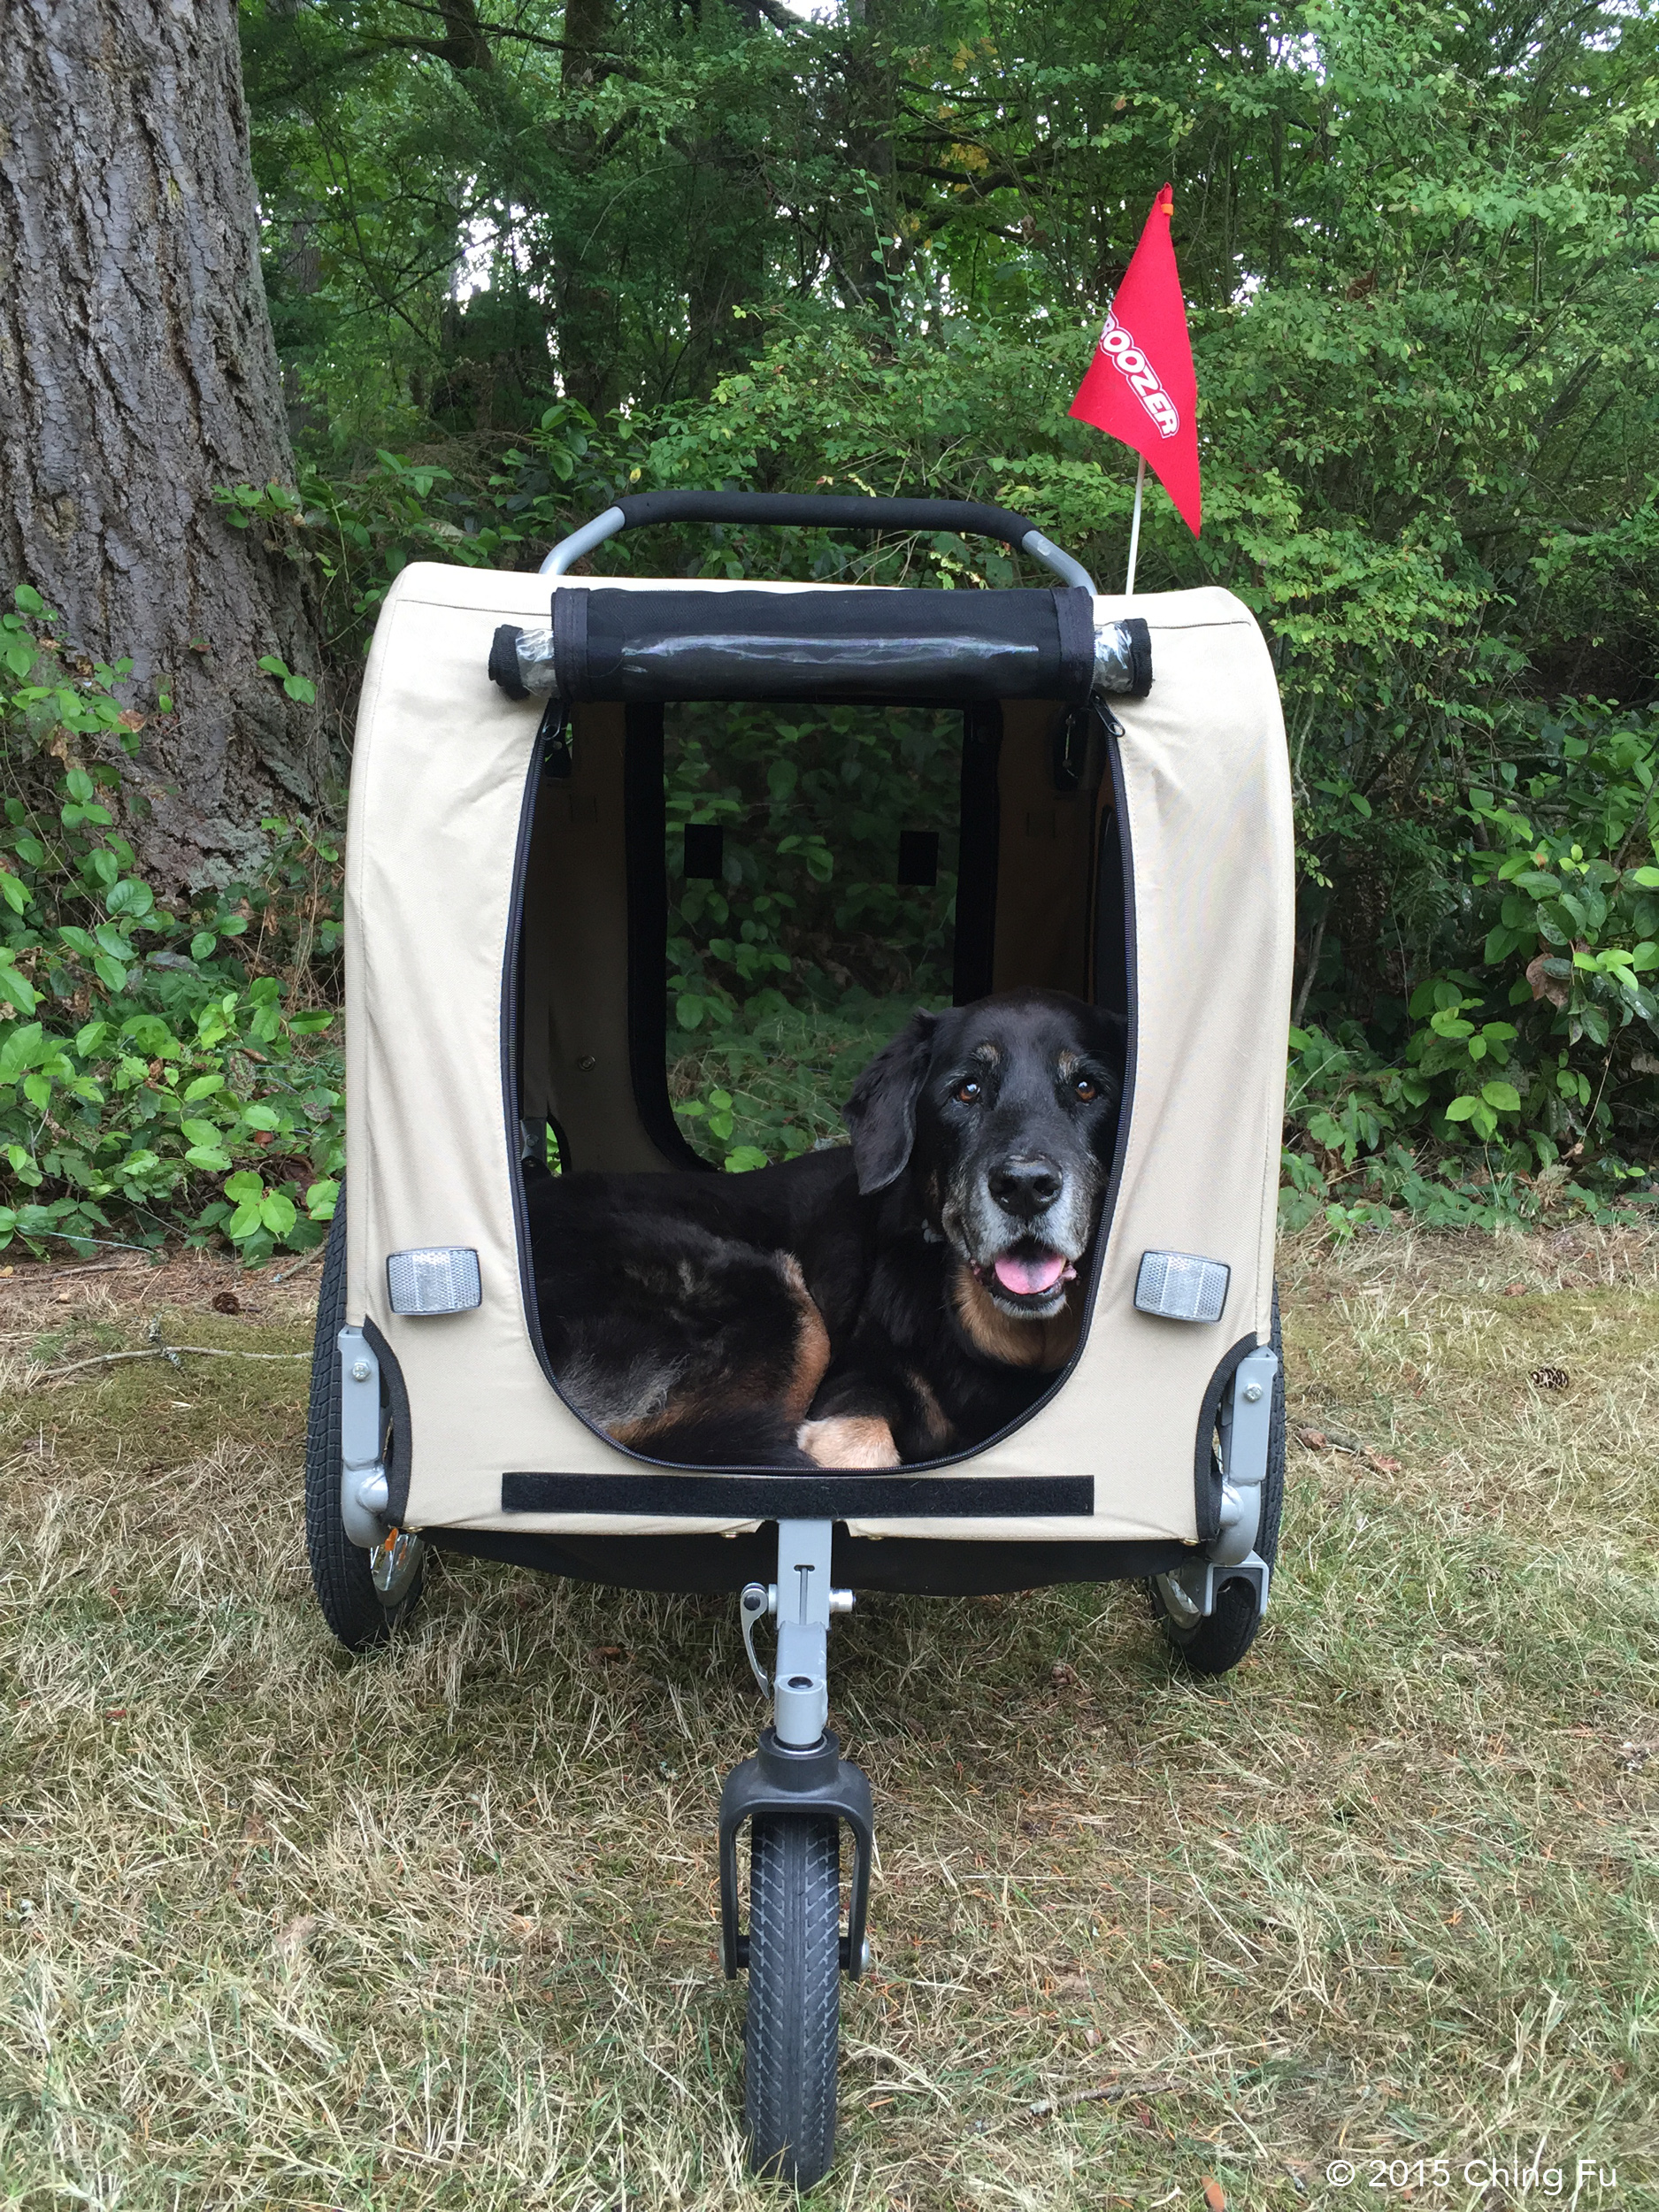 Tybee in her new Croozer dog trailer.